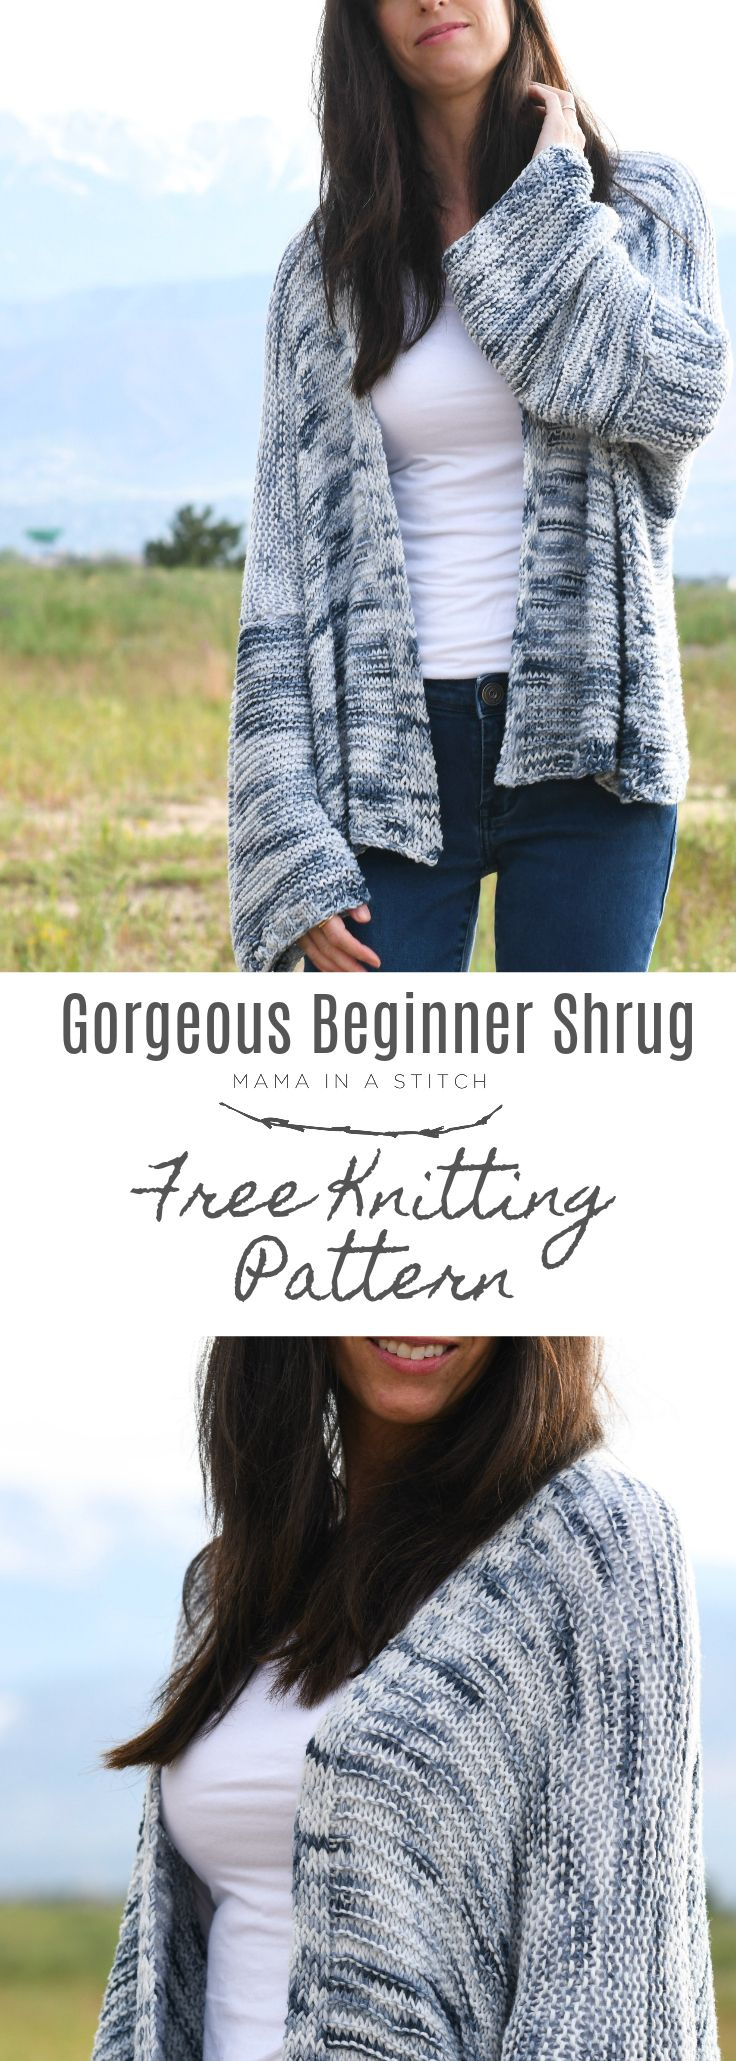 Painted Sky Comfy Shrug – Beginner Sweater Pattern #shrugsweater